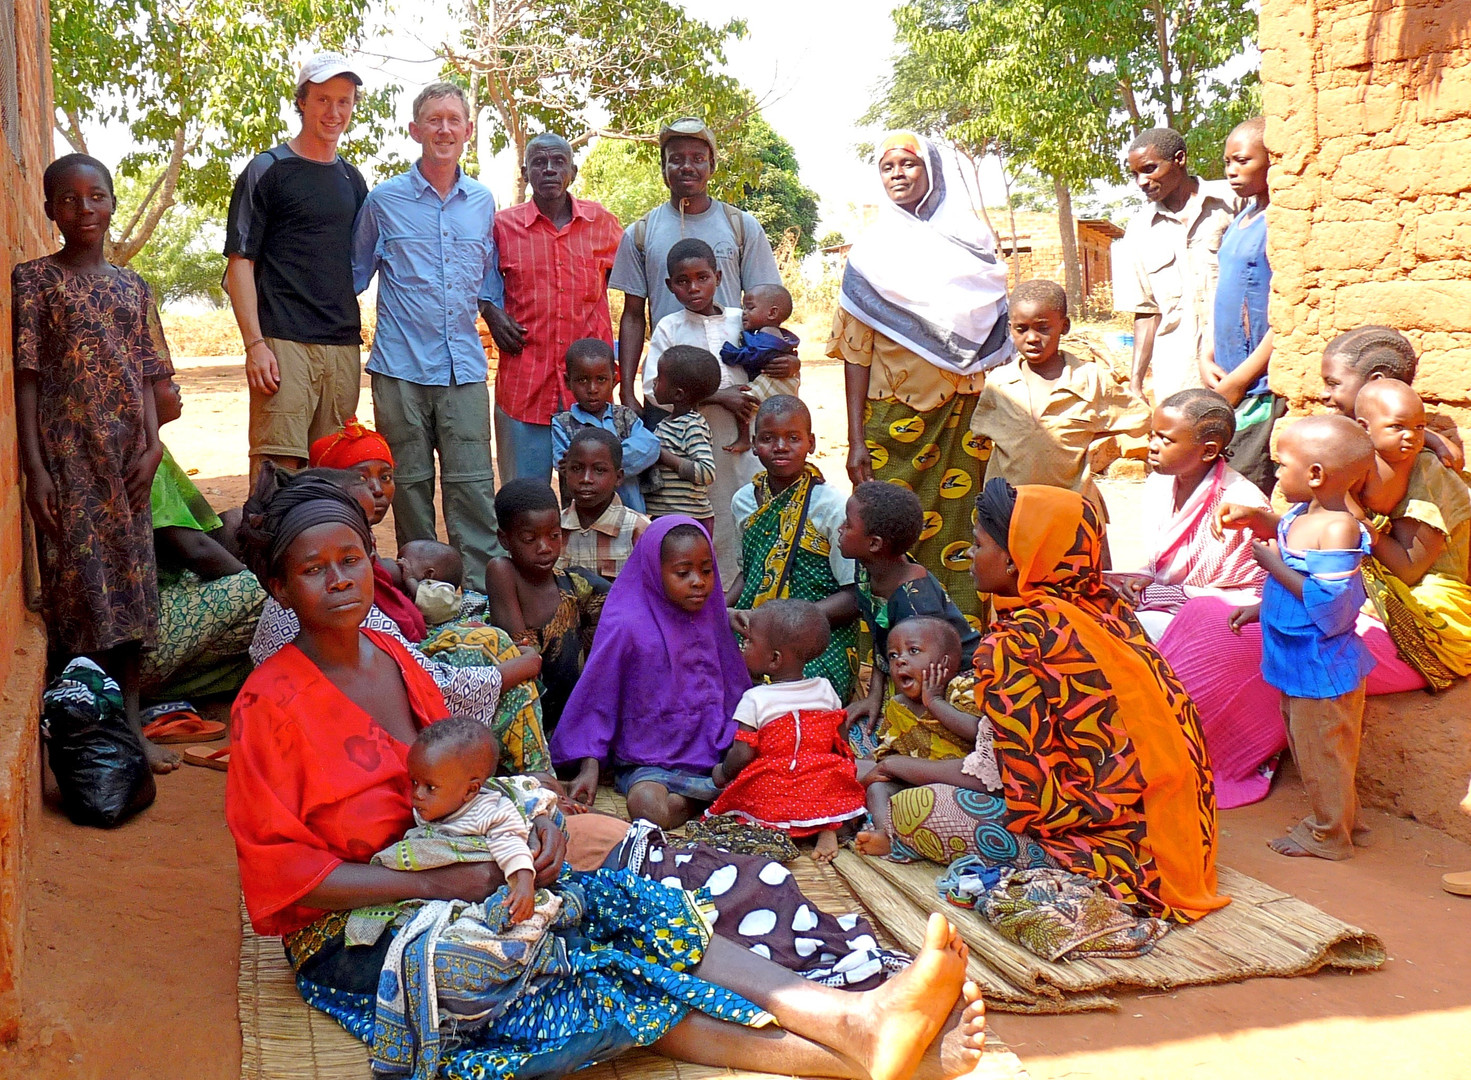 Hamisi with Figan, Tommy, me and extended family in Bubongo Village. Photo by Abdul Ntandu, 2009.